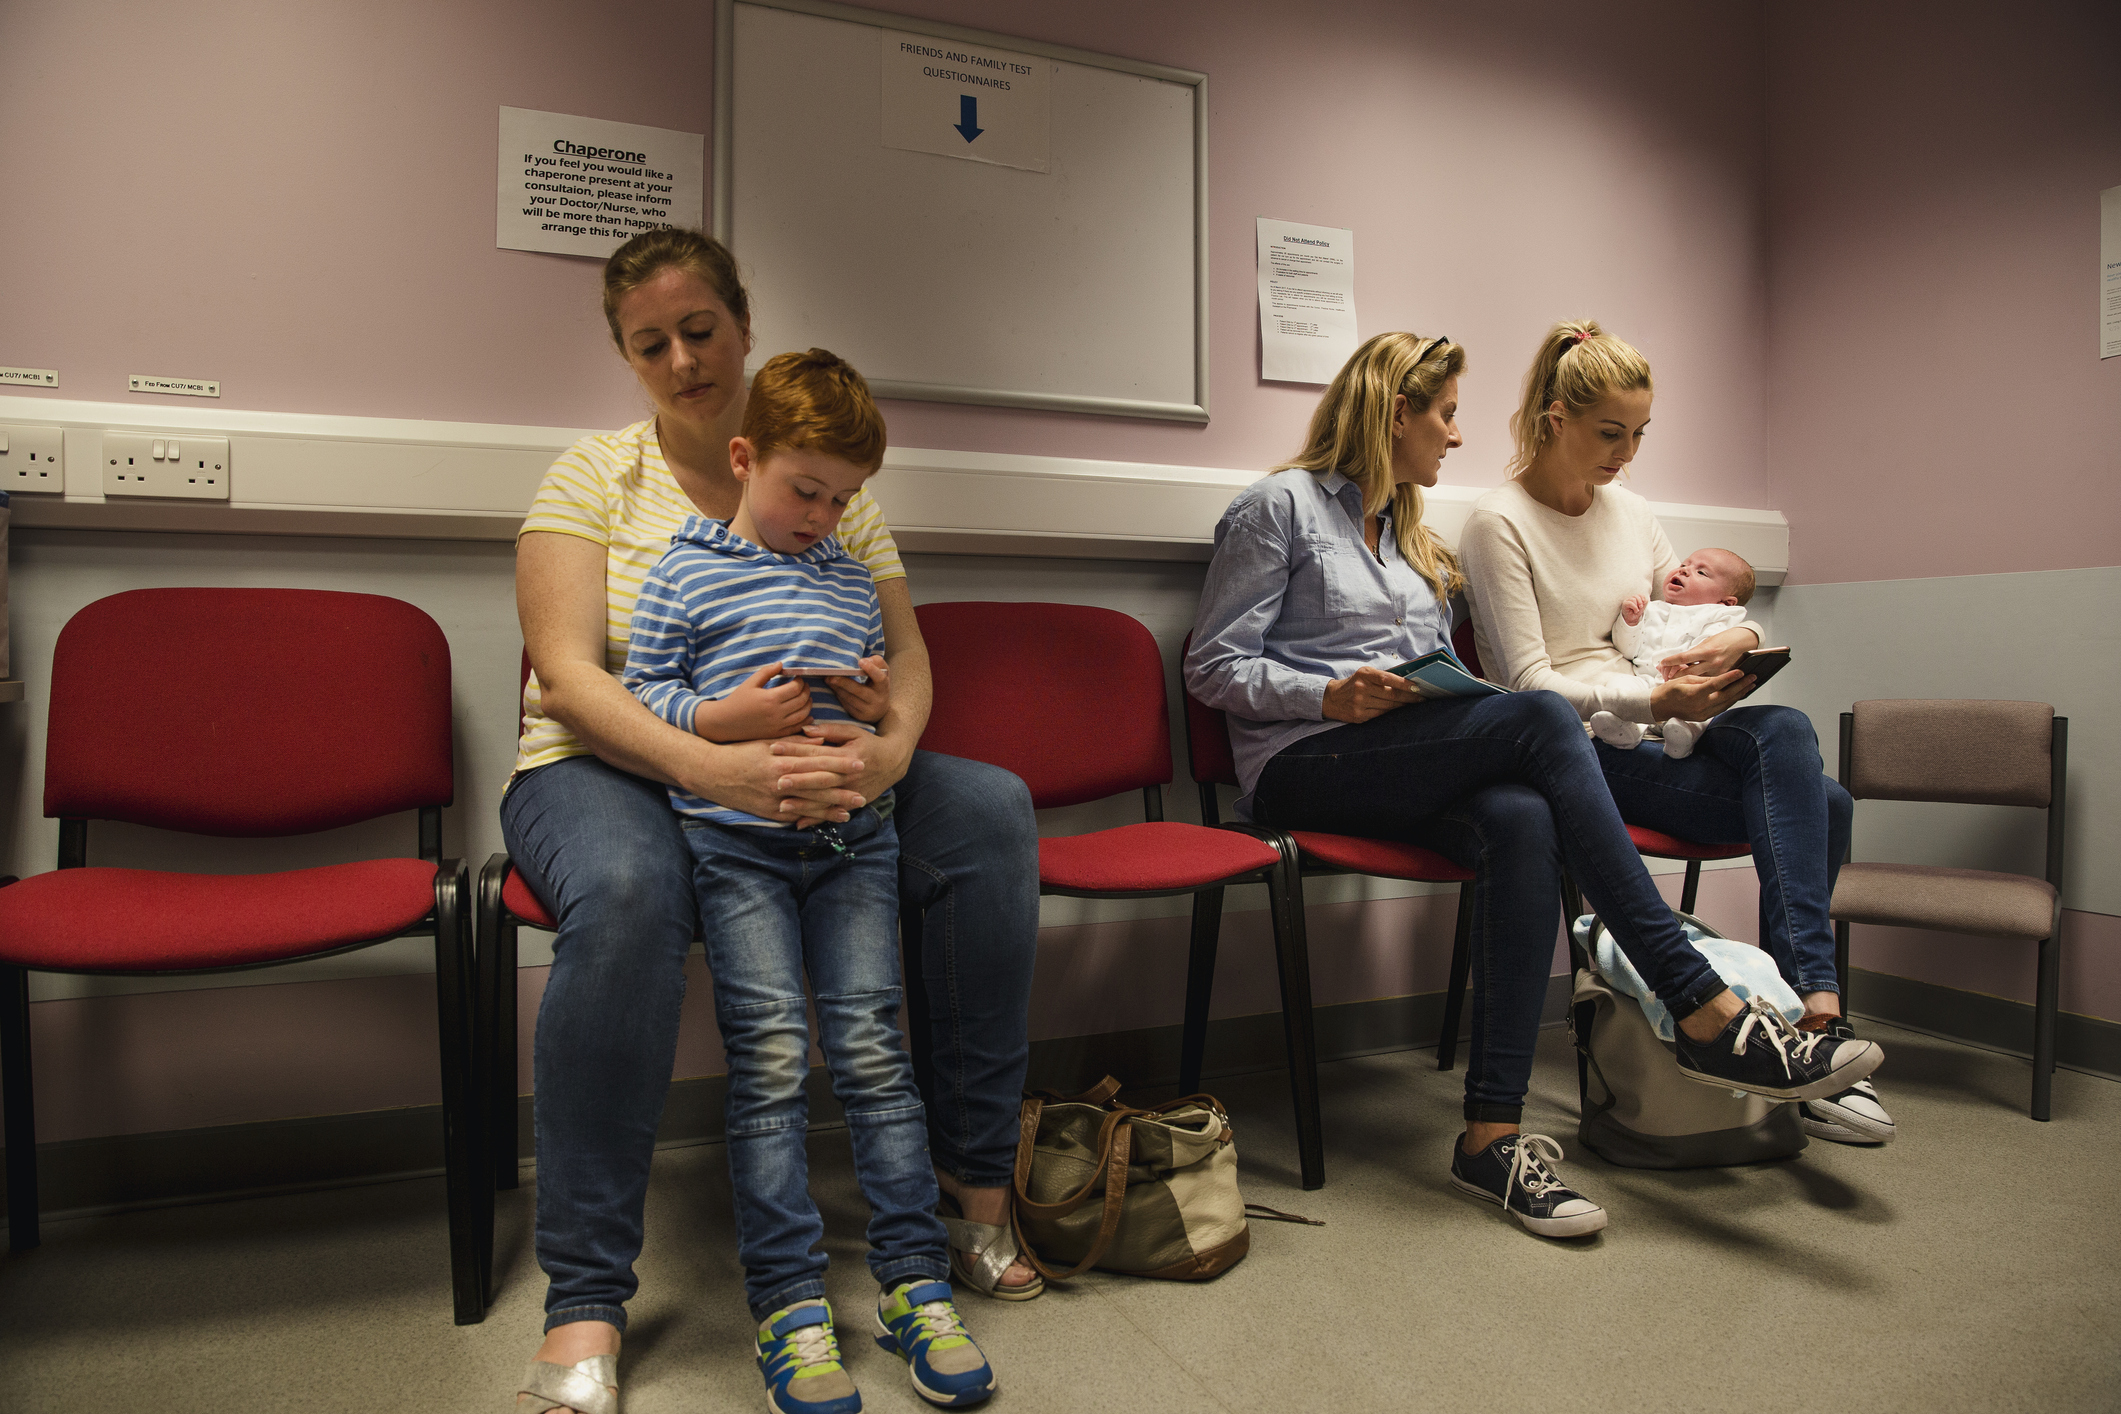 Two families waiting in a hospital waiting room